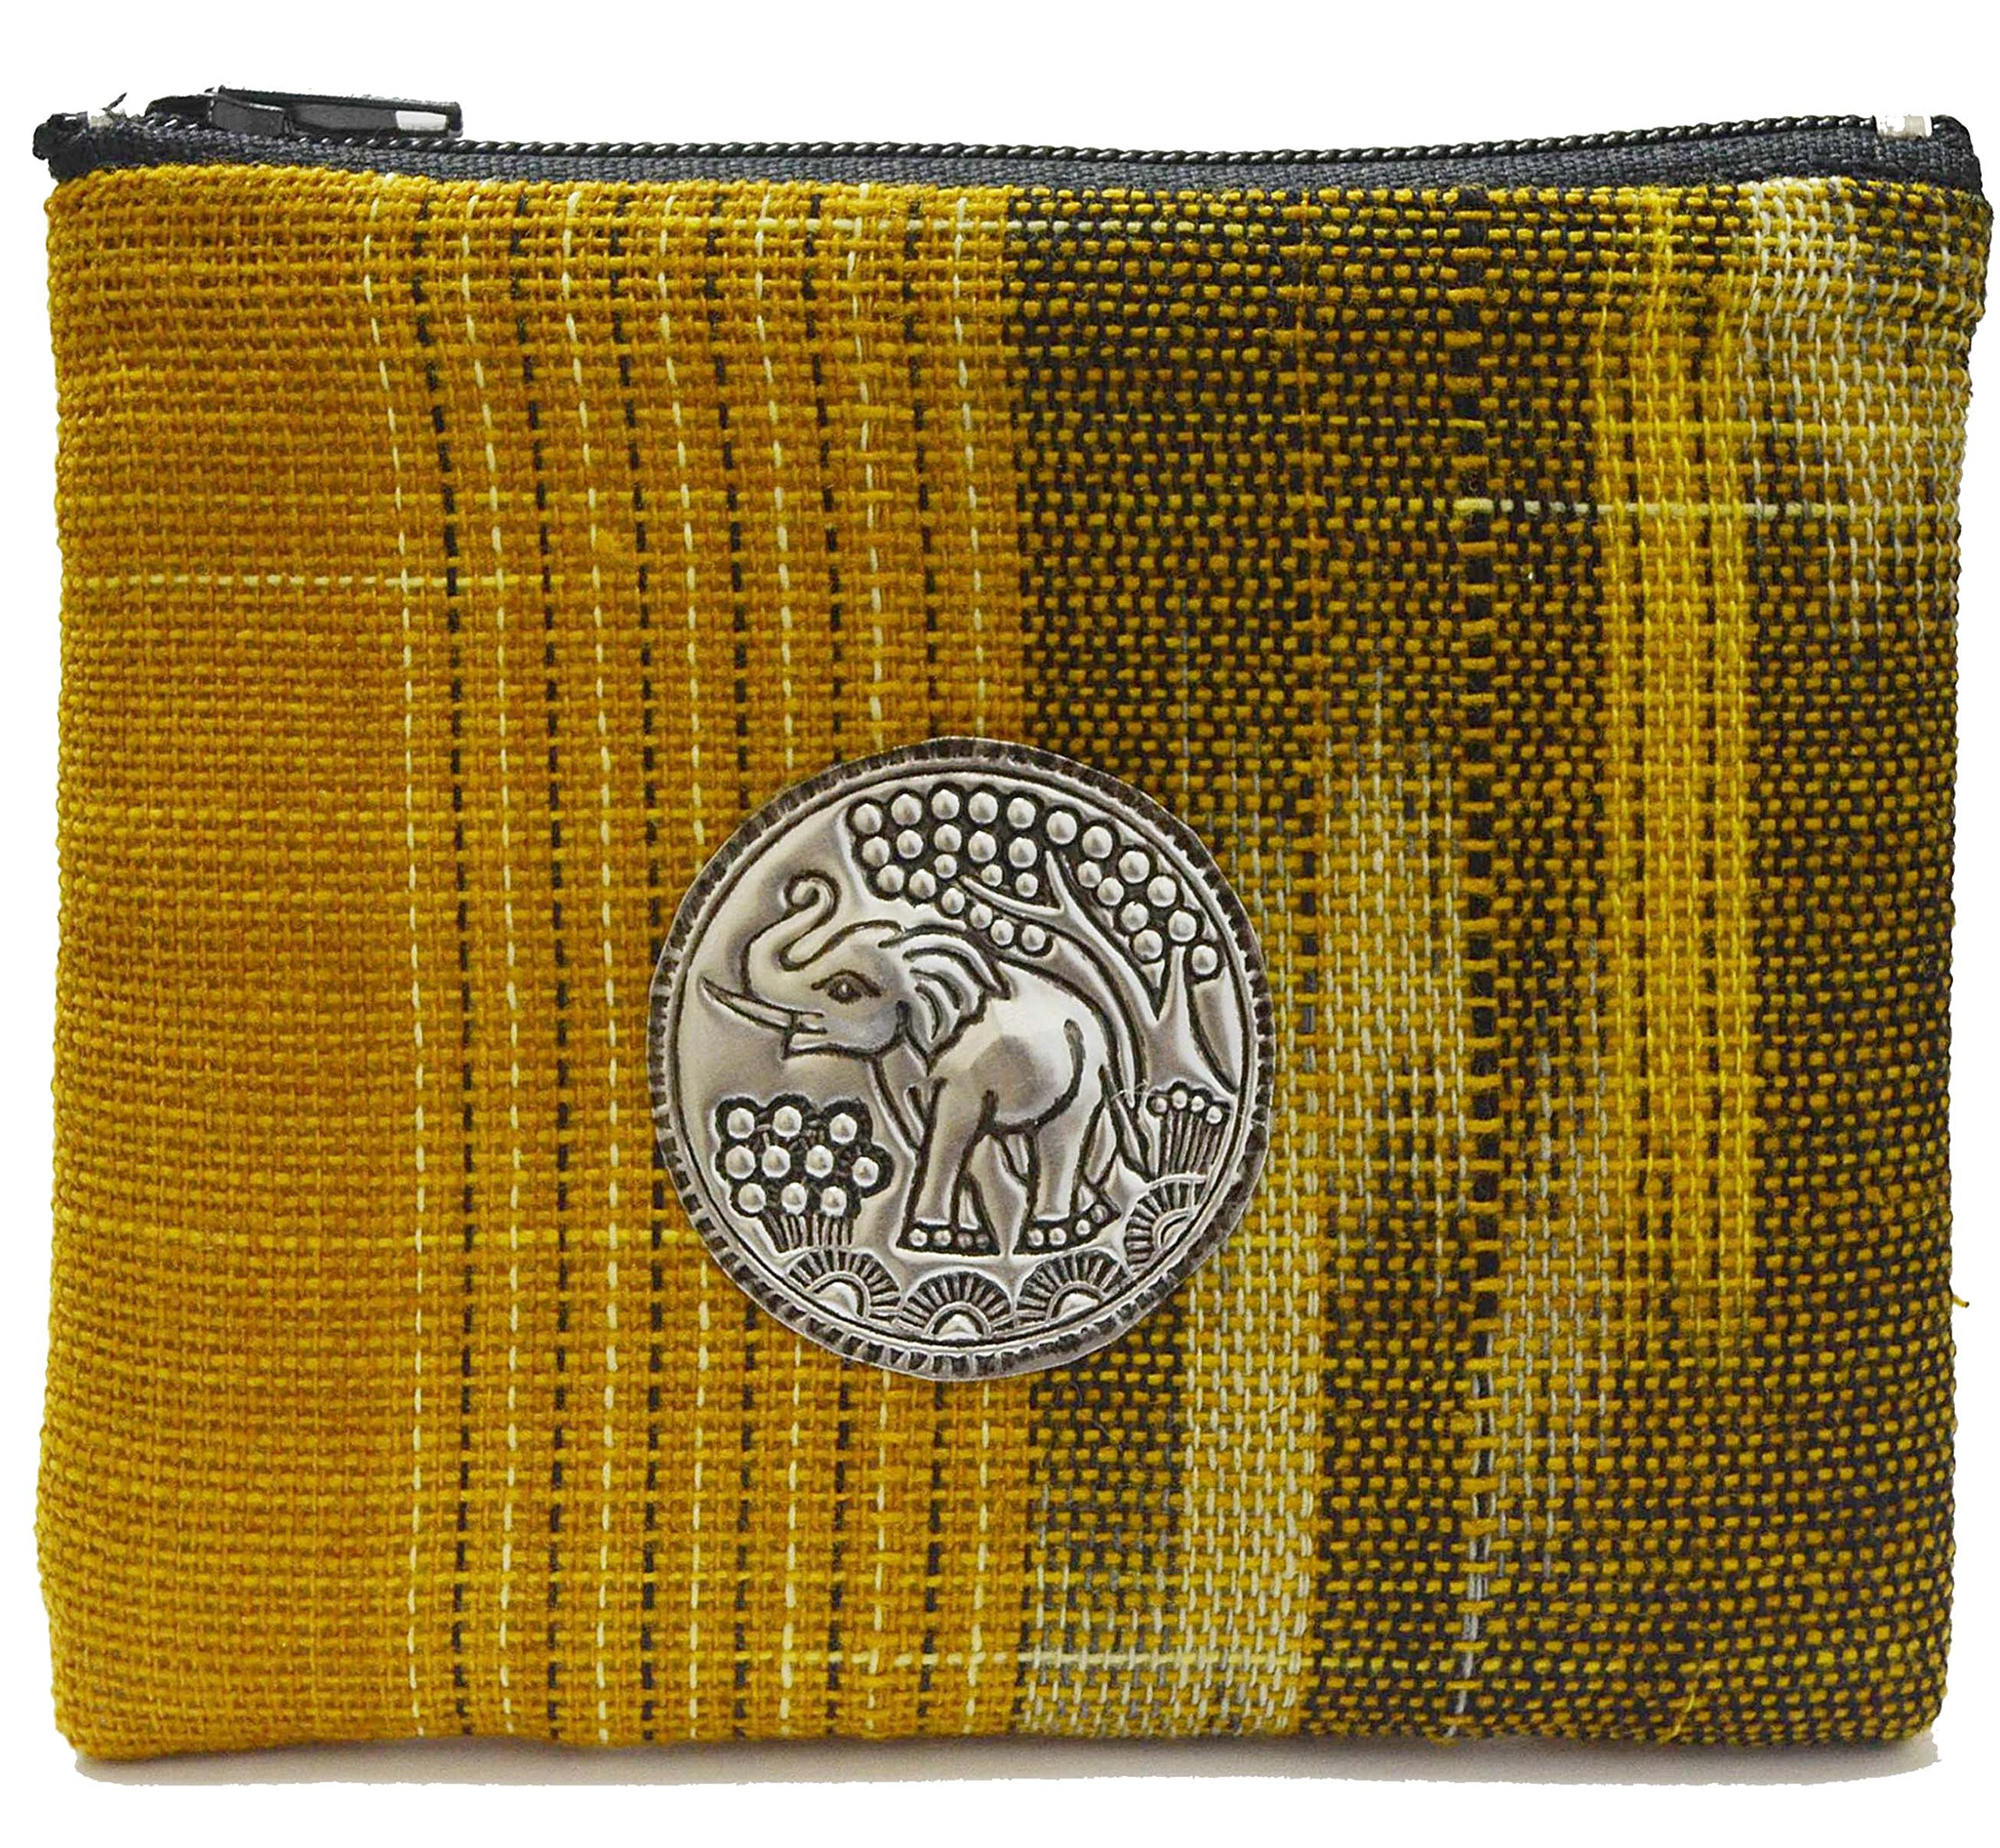 Thai Gift Thai Handmade Small Coin Bags Wallet Elephant Vintage Style From Thailand